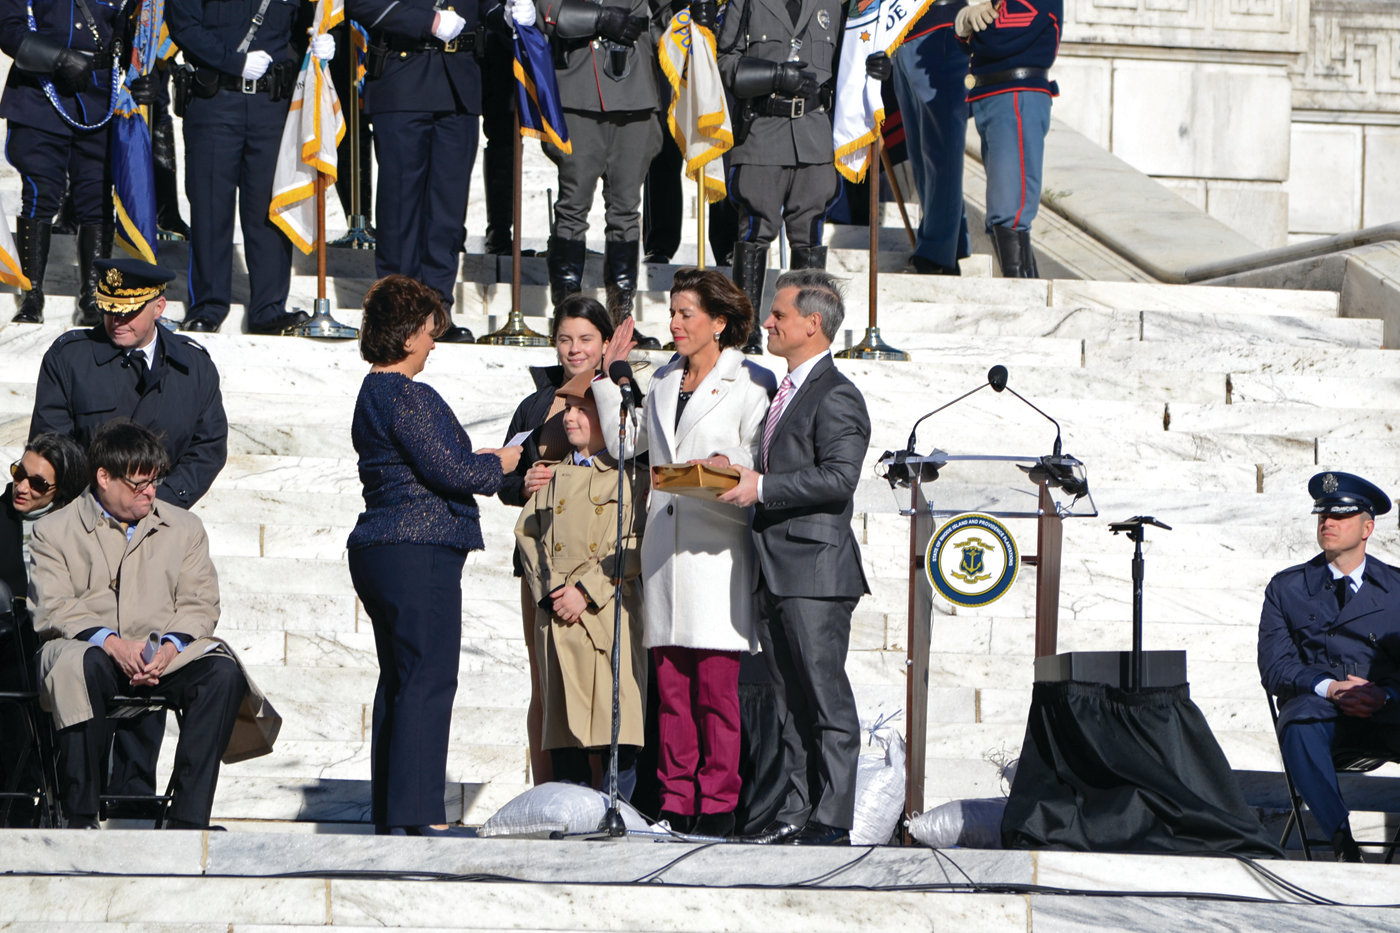 FOUR MORE YEARS: Governor Gina Raimondo, surrounded by family, is sworn in for her second term as Governor of Rhode Island by Secretary of State Nellie Gorbea, who was later sworn in for her new term by Raimondo.